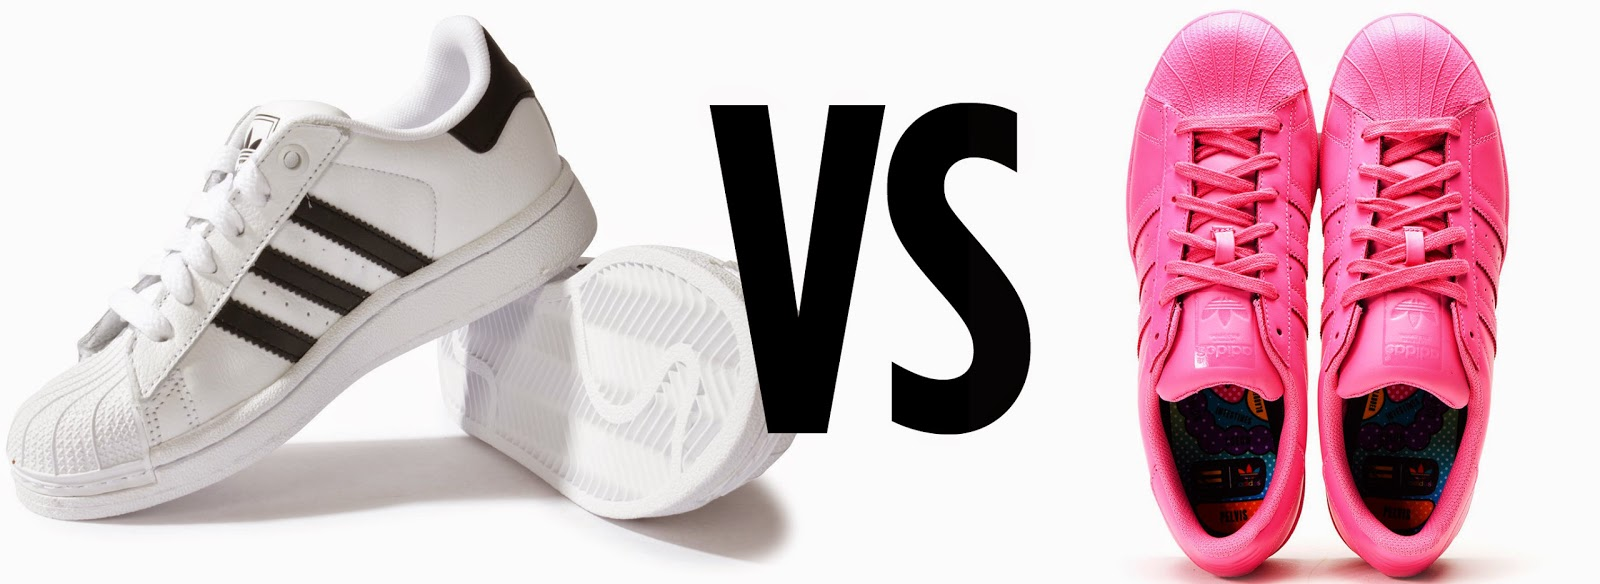 Eniwhere Fashion - Adidas Superstar vs Adidas Supercolor